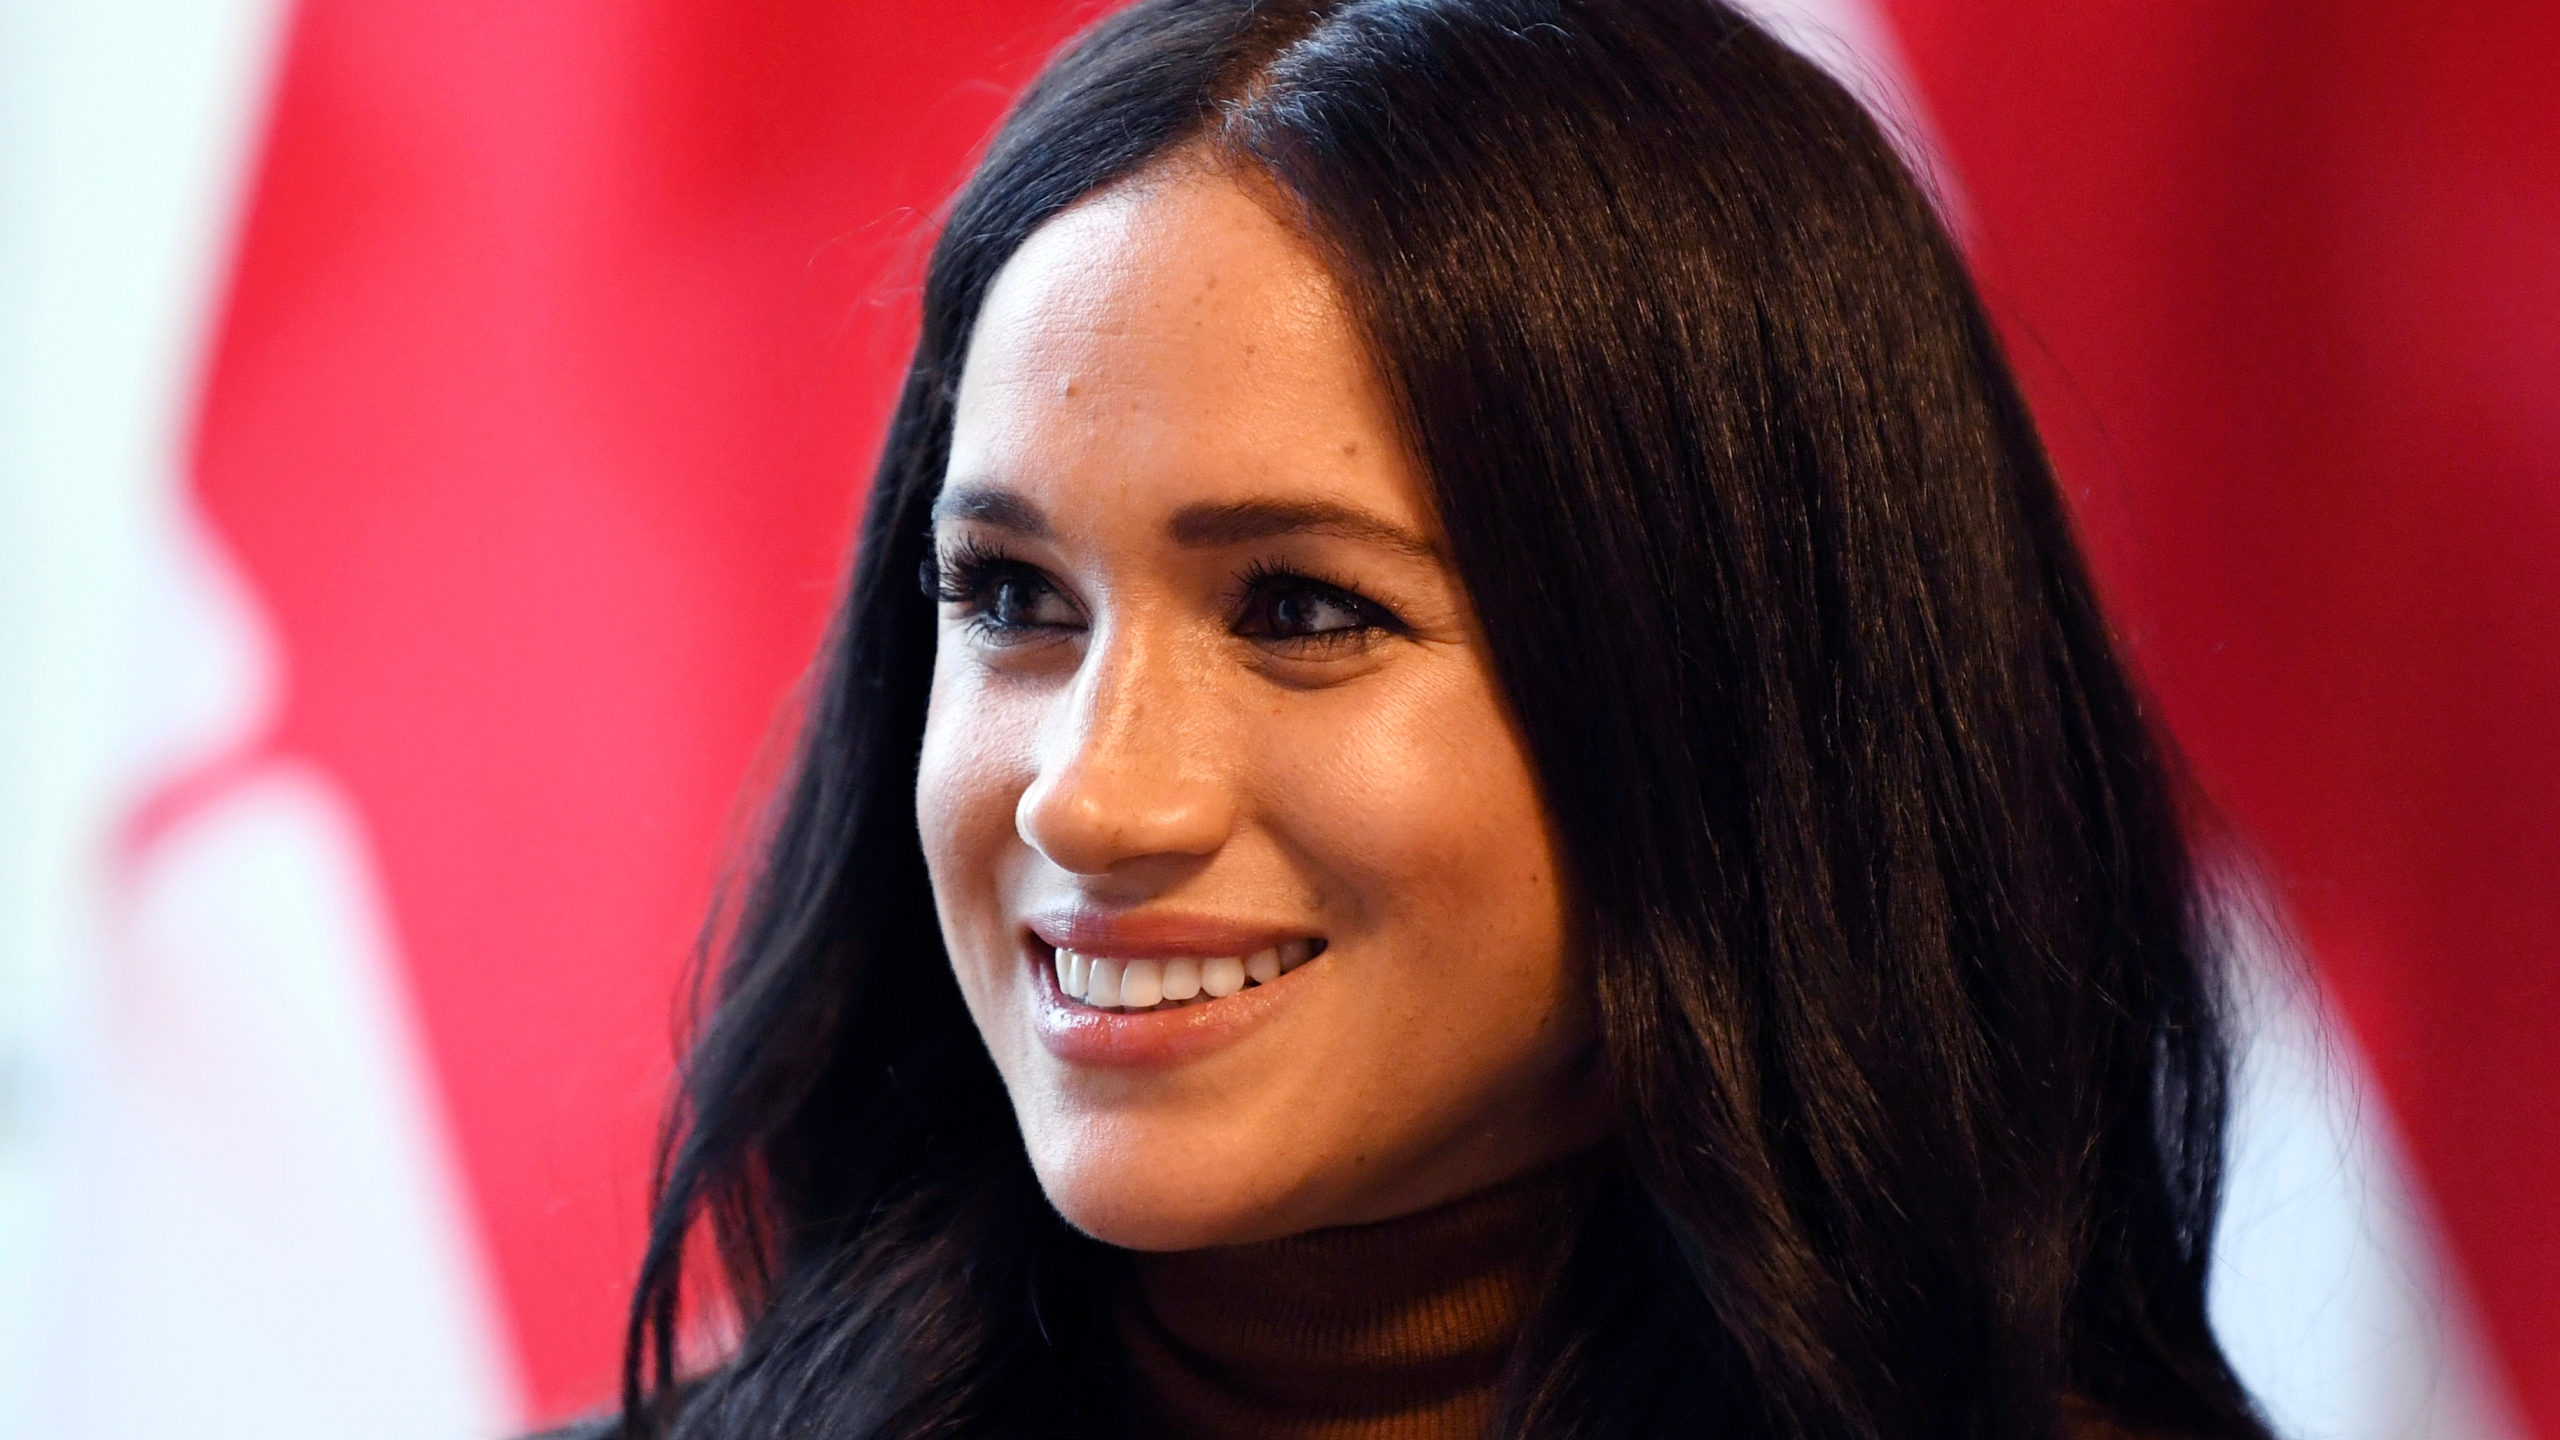 In this Jan. 7, 2020 file photo, Meghan, Duchess of Sussex smiles during her visit with Prince Harry to Canada House in London. (Daniel Leal-Olivas/Pool Photo/Associated Press)